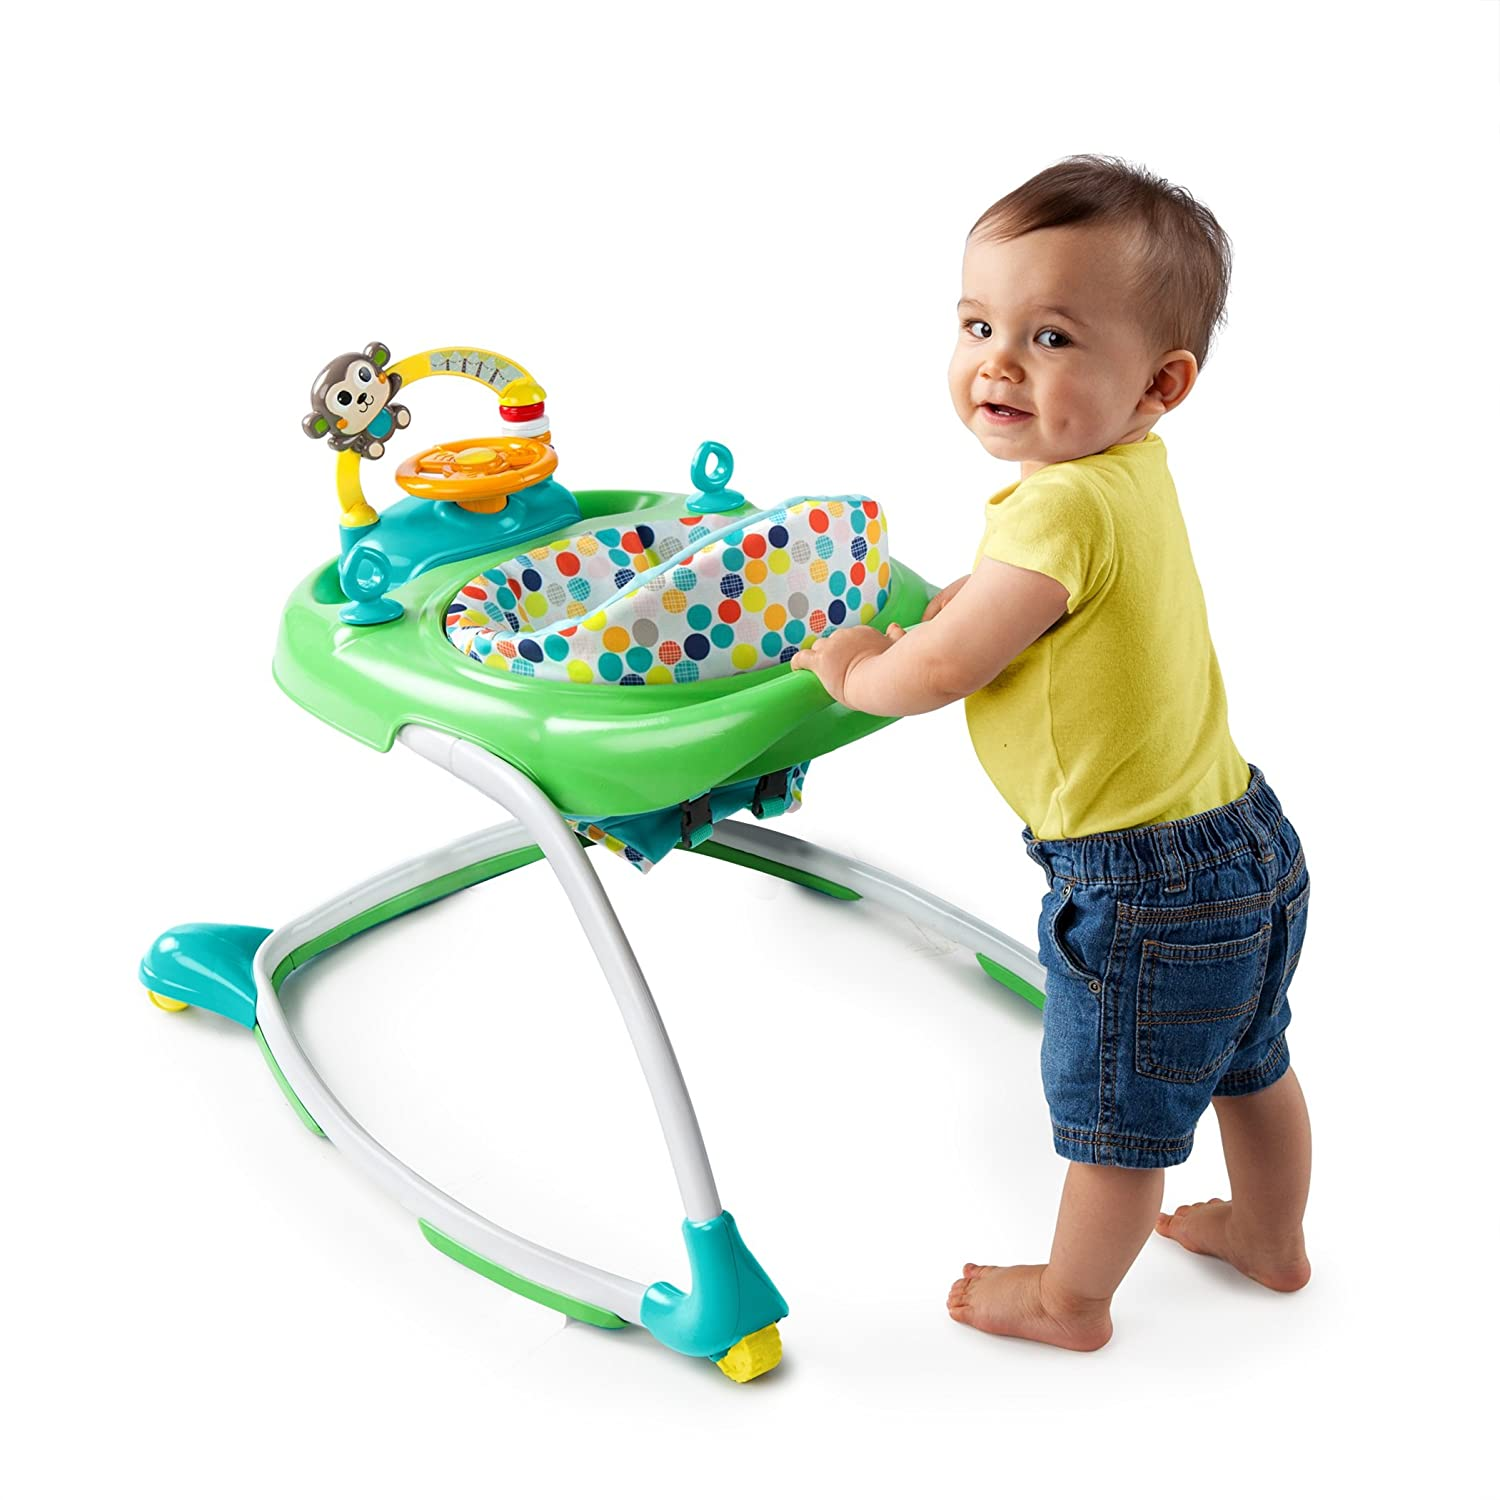 Bright Starts Walking Wild Walker 2 in 1 Amazon Baby